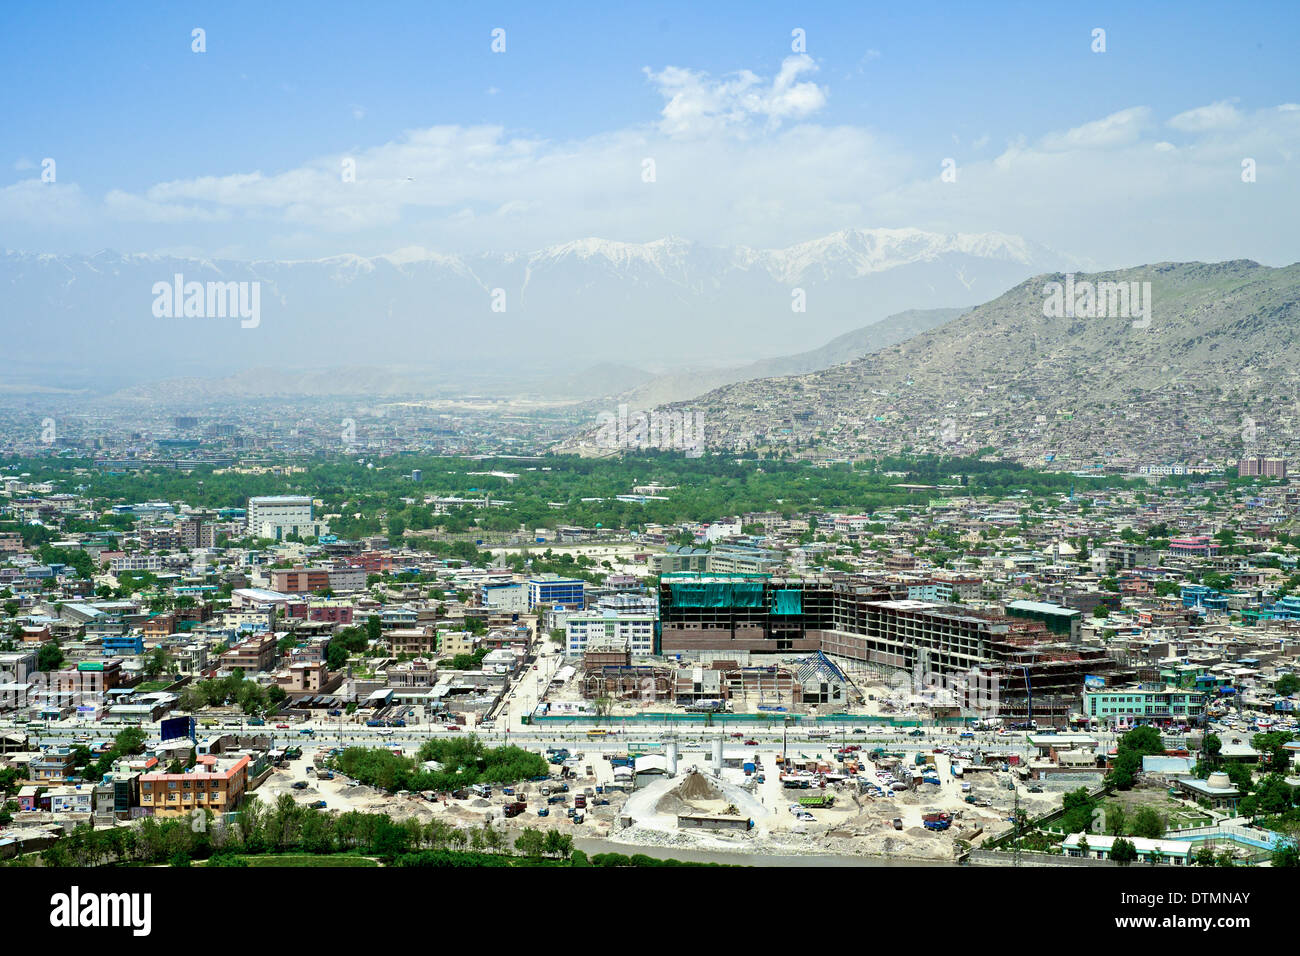 Overview of Kabul, Afghanistan Stock Photo